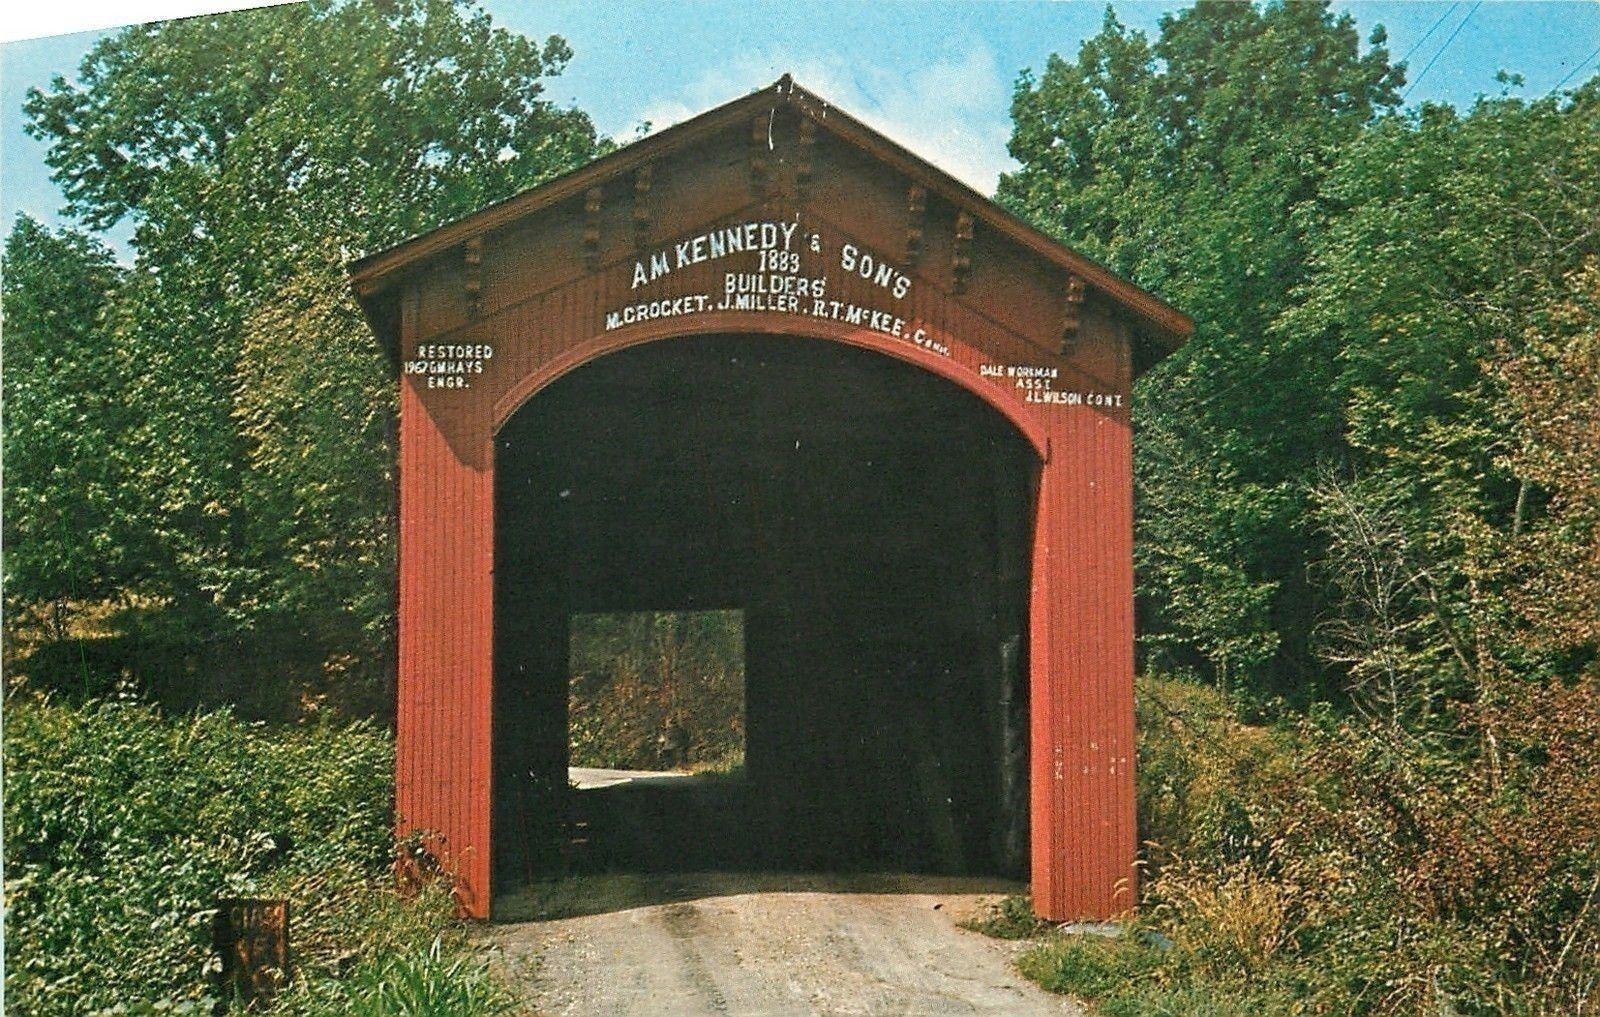 covered bridge before renovation in 1998